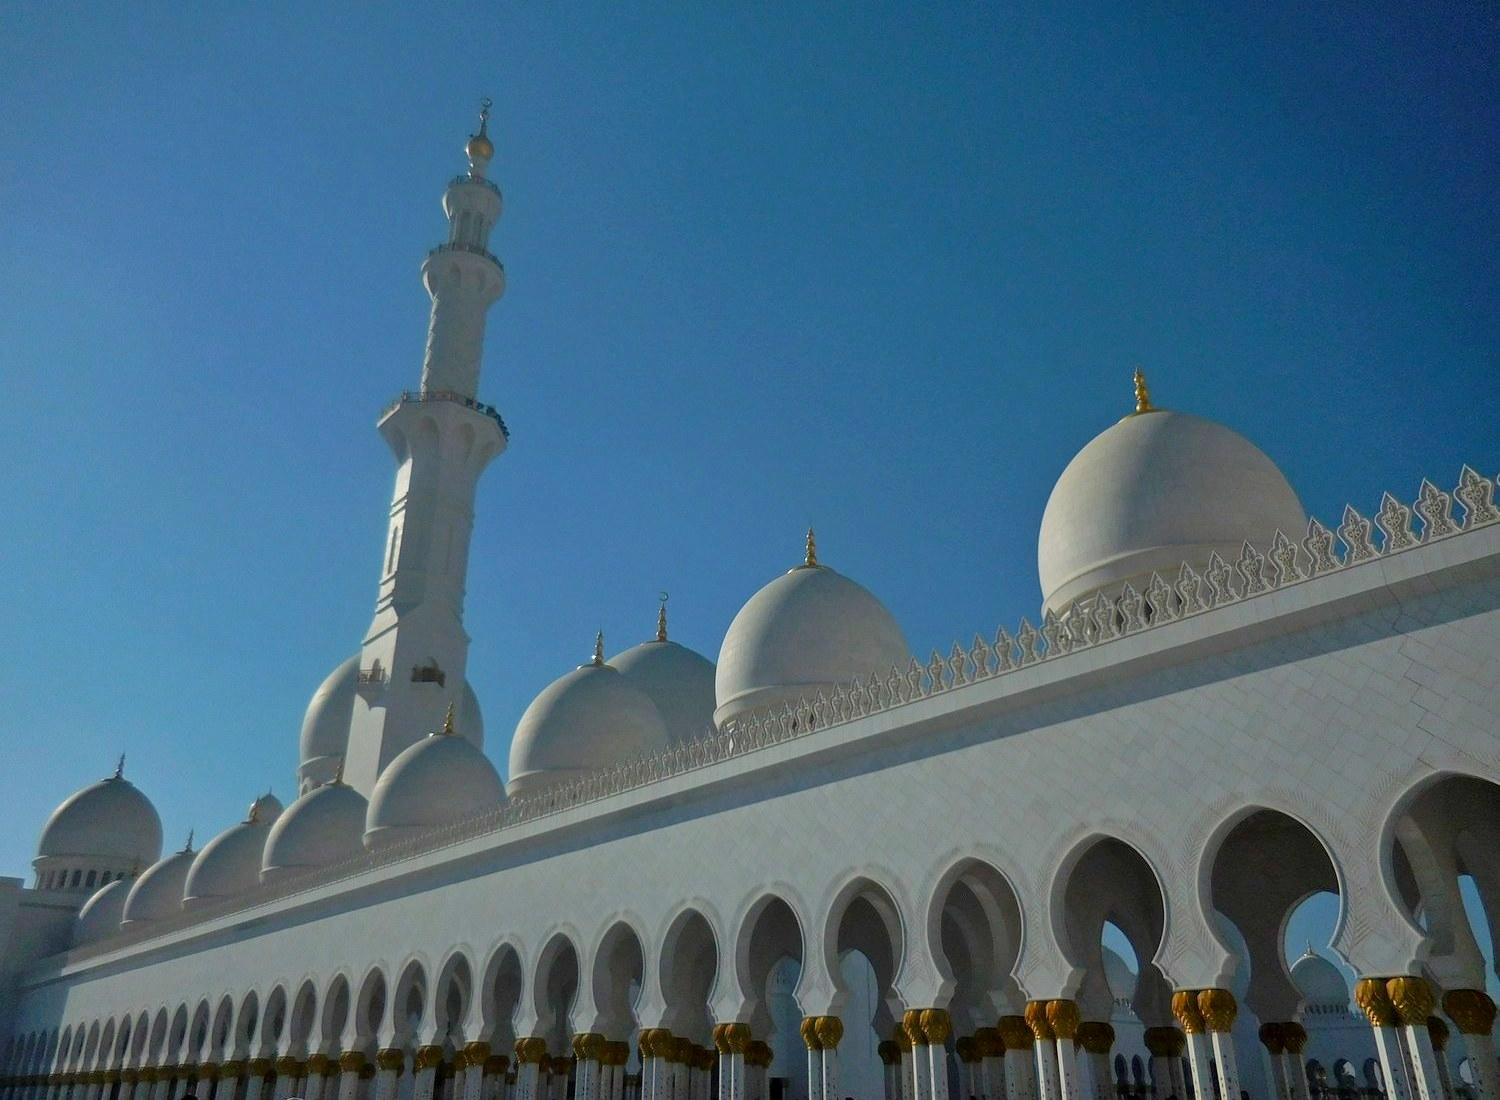 Sheikh Zayed Grand Mosque, Abu Dhabi, UAE, Approaching the Mosque, Close Shot